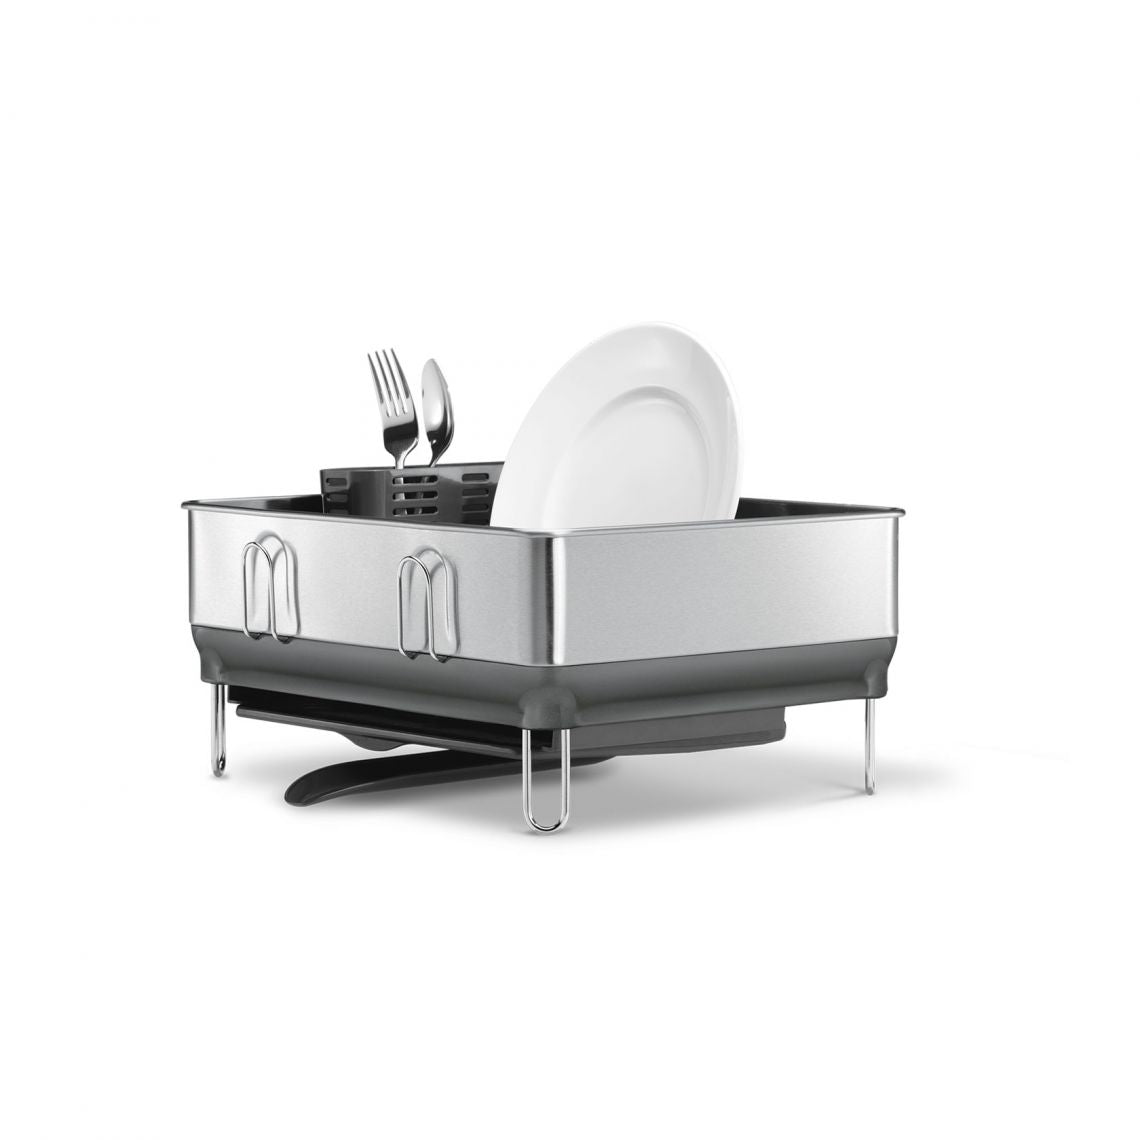 Photo of Simplehuman Steel Frame Dish Rack (Stainless Steel)